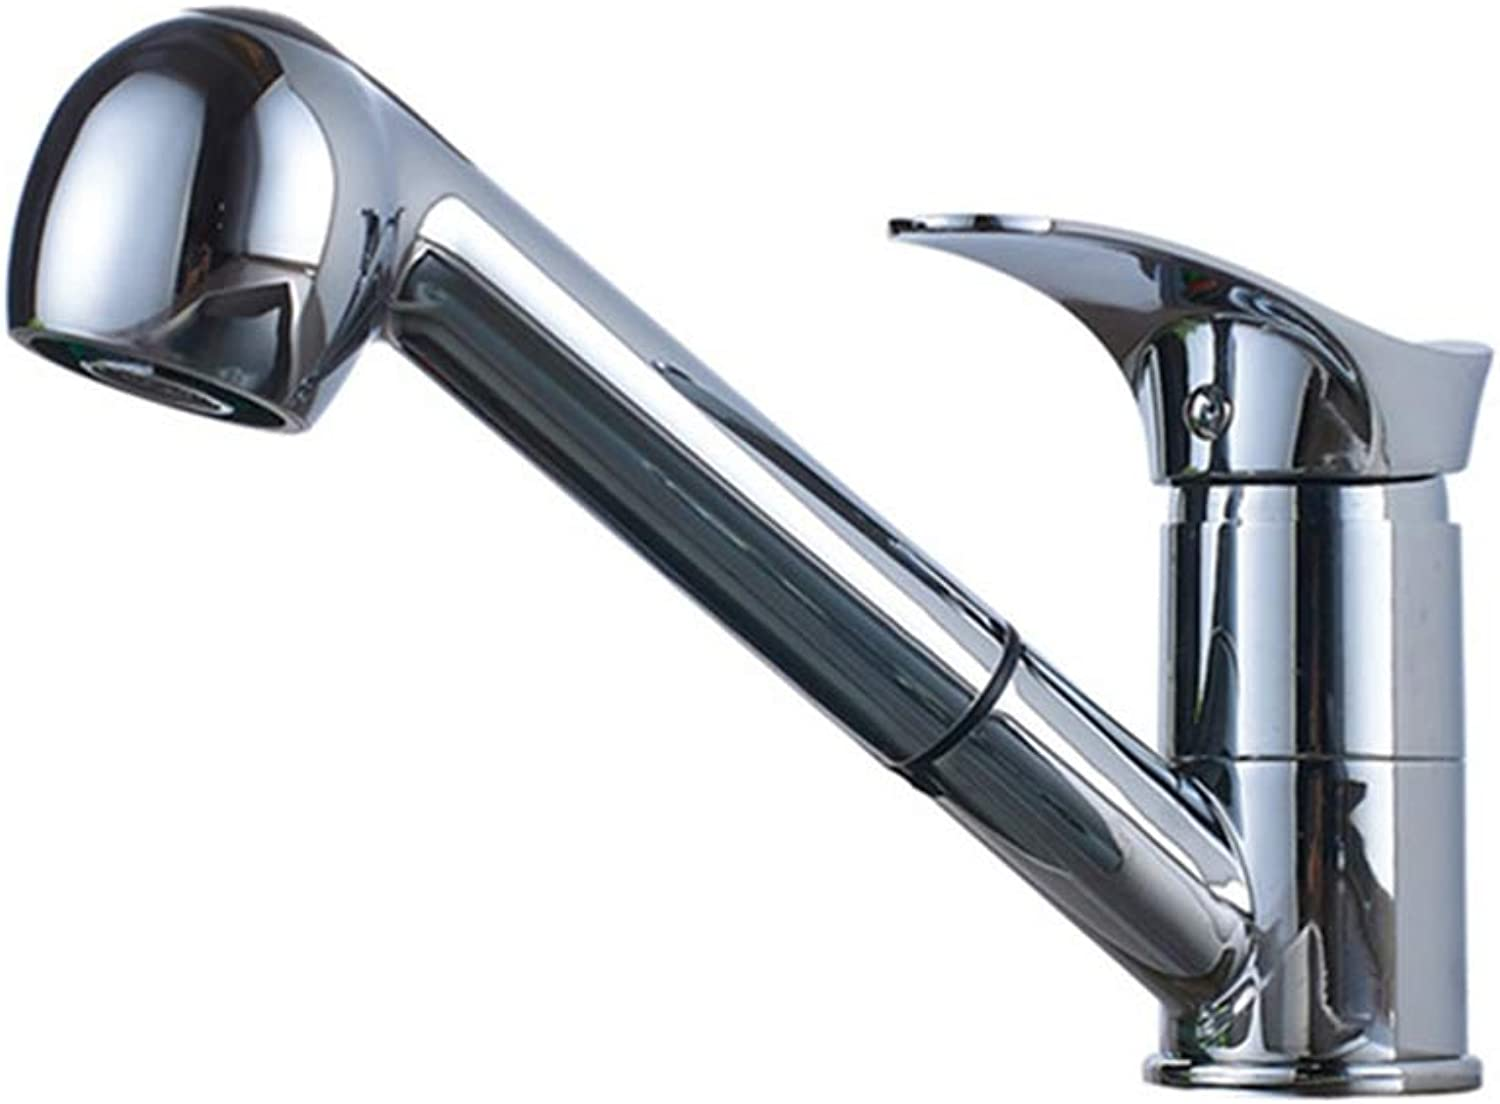 FZHLR Kitchen Black Beige Chrome golden Brushed Single Handle Faucet Pull Down Deck Mounted Crane for Sinks Hot and Cold Water Mixer Faucet,Chrome